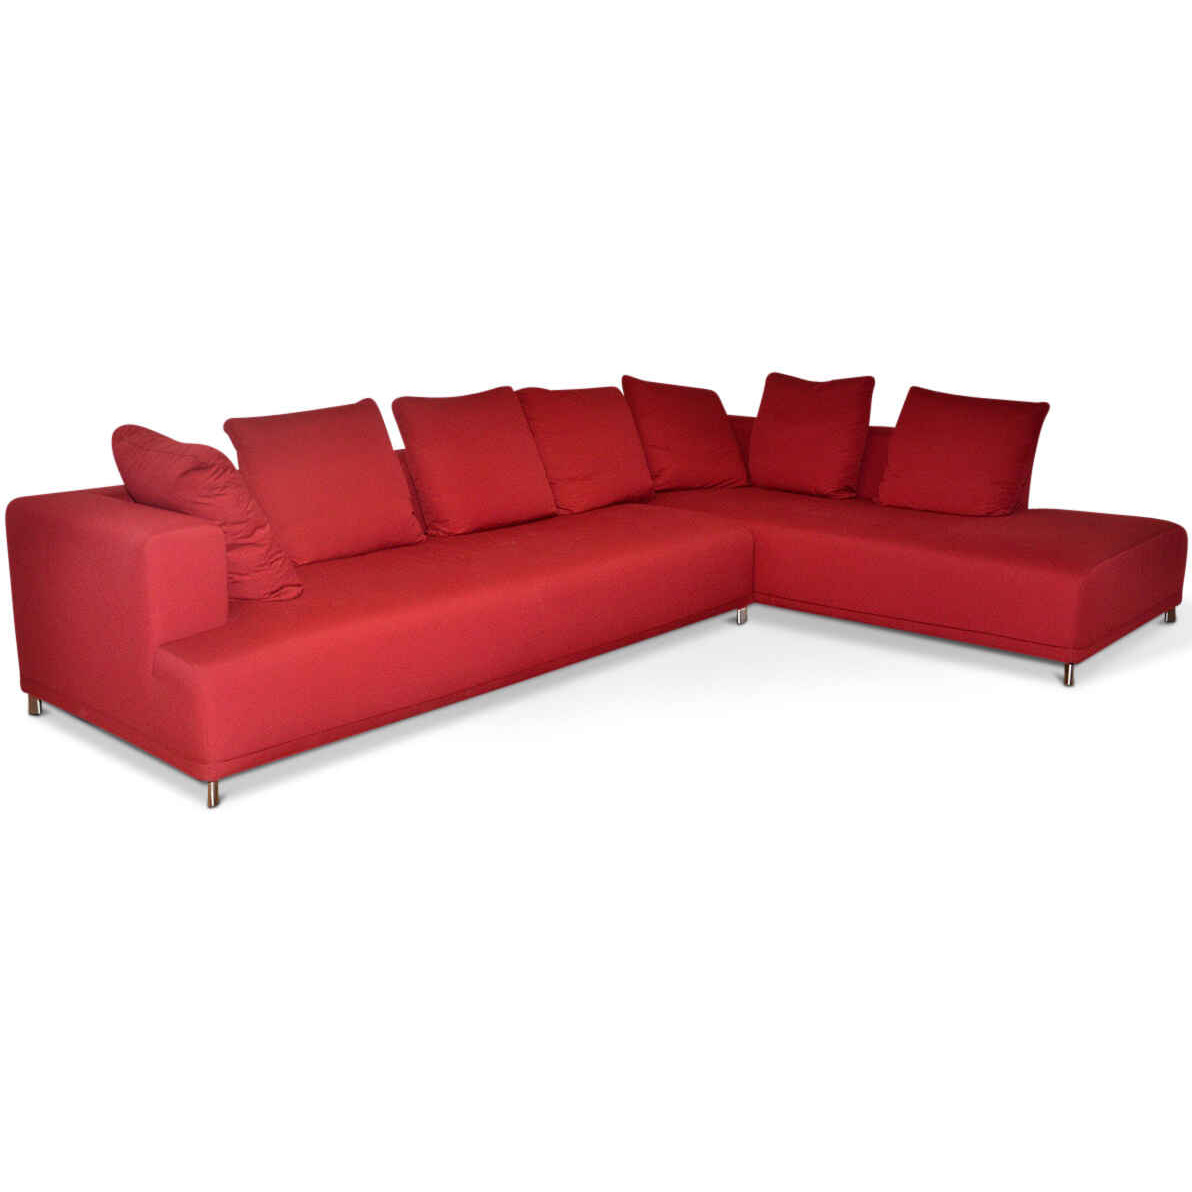 ligne roset designer corner sofa opium fabric steel red stainless steel ebay. Black Bedroom Furniture Sets. Home Design Ideas